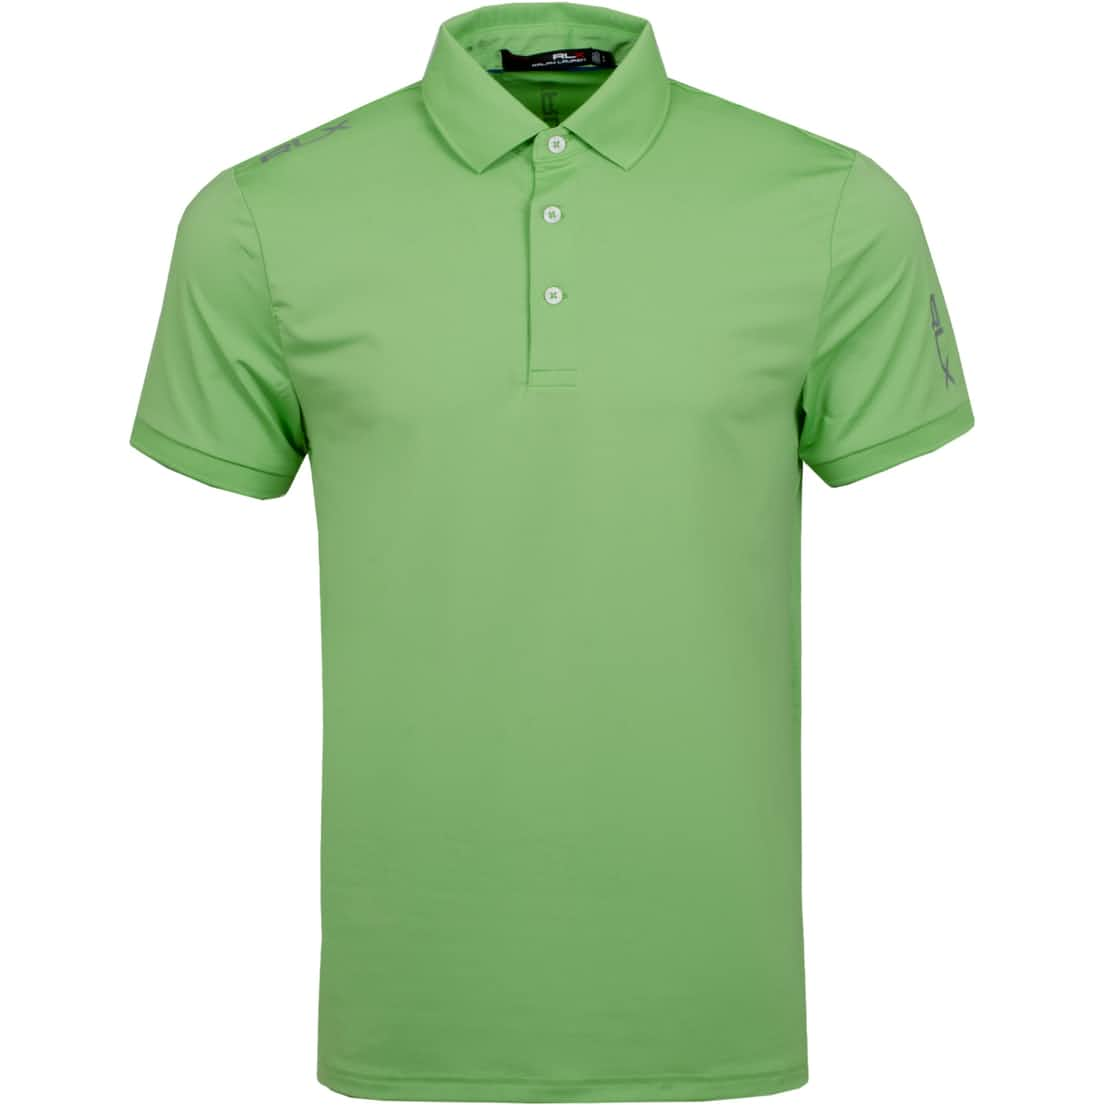 Solid Airflow Jersey Riviera Green - SS20